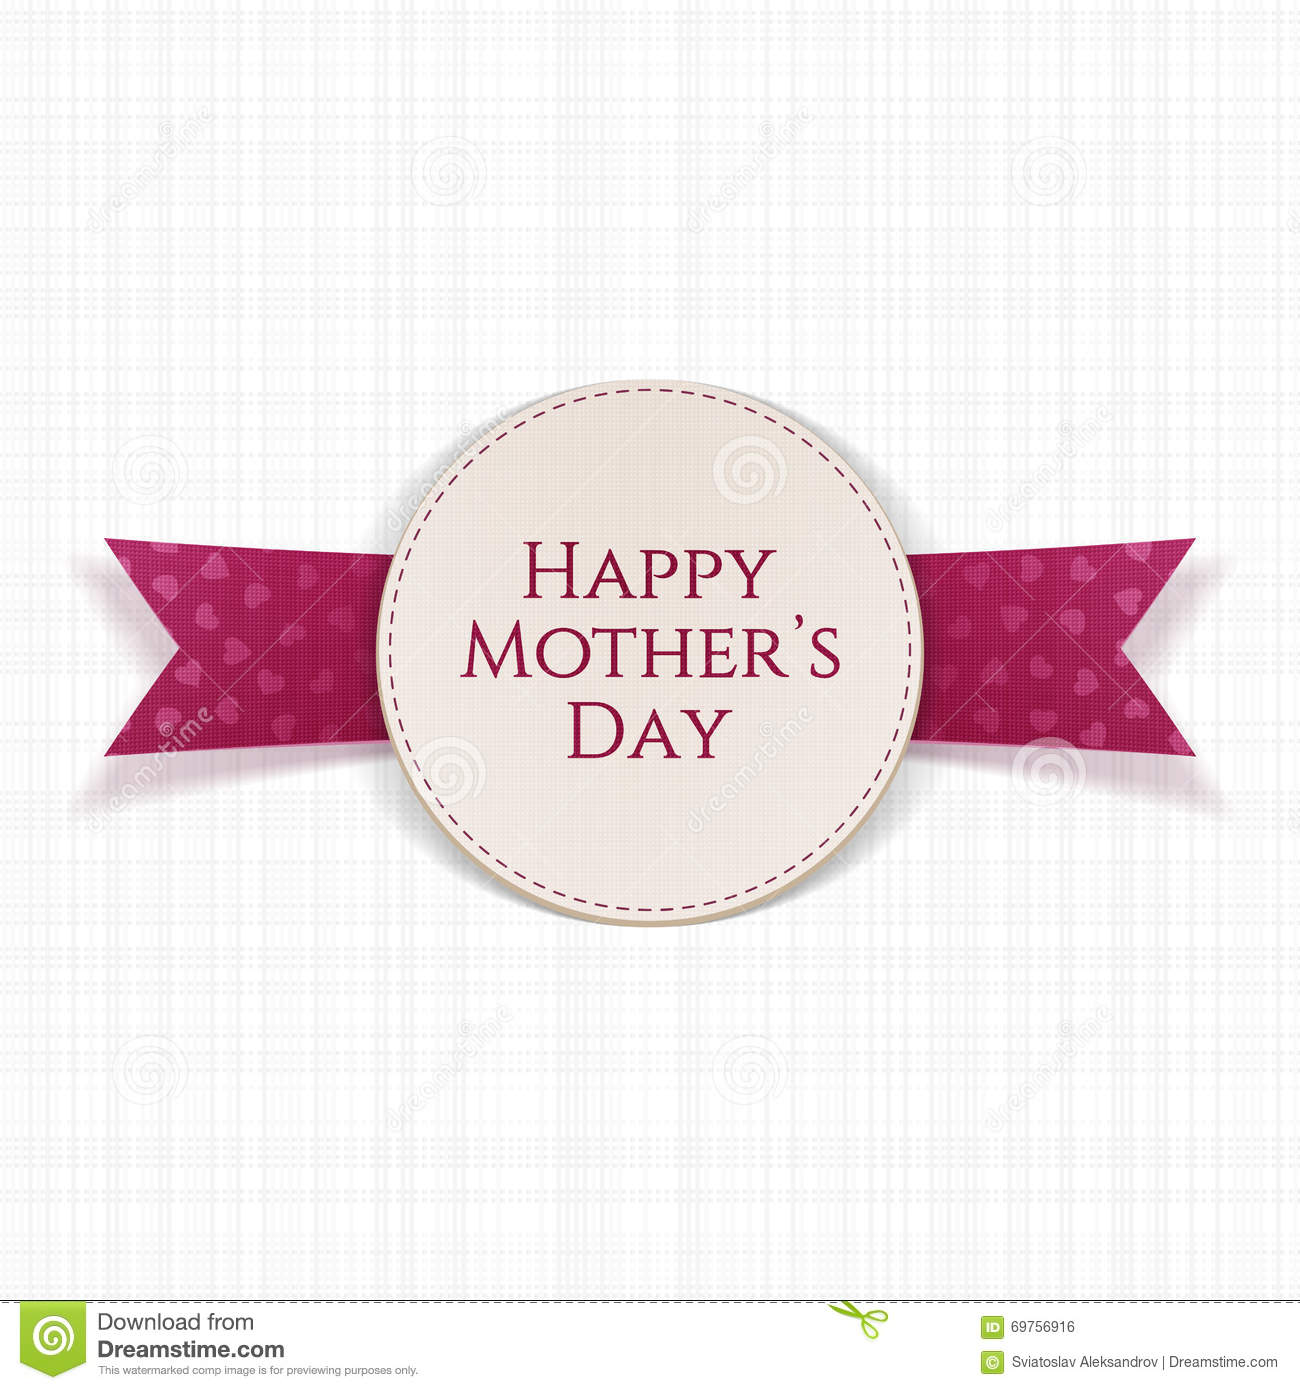 Happy mothers day text on greeting card stock vector happy mothers day text on greeting card kristyandbryce Choice Image